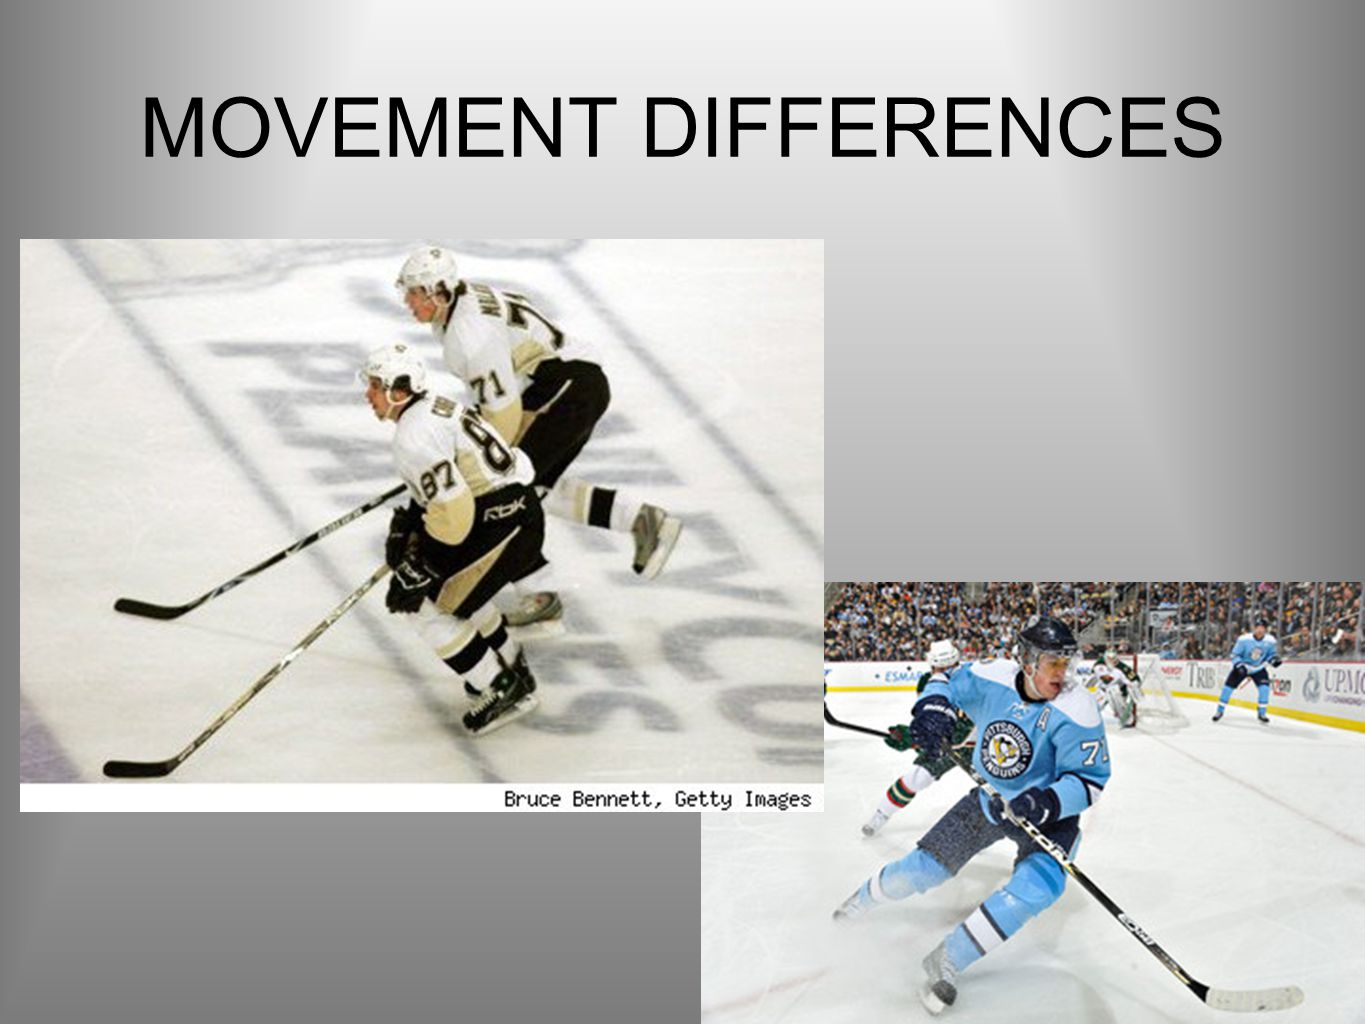 MOVEMENT DIFFERENCES